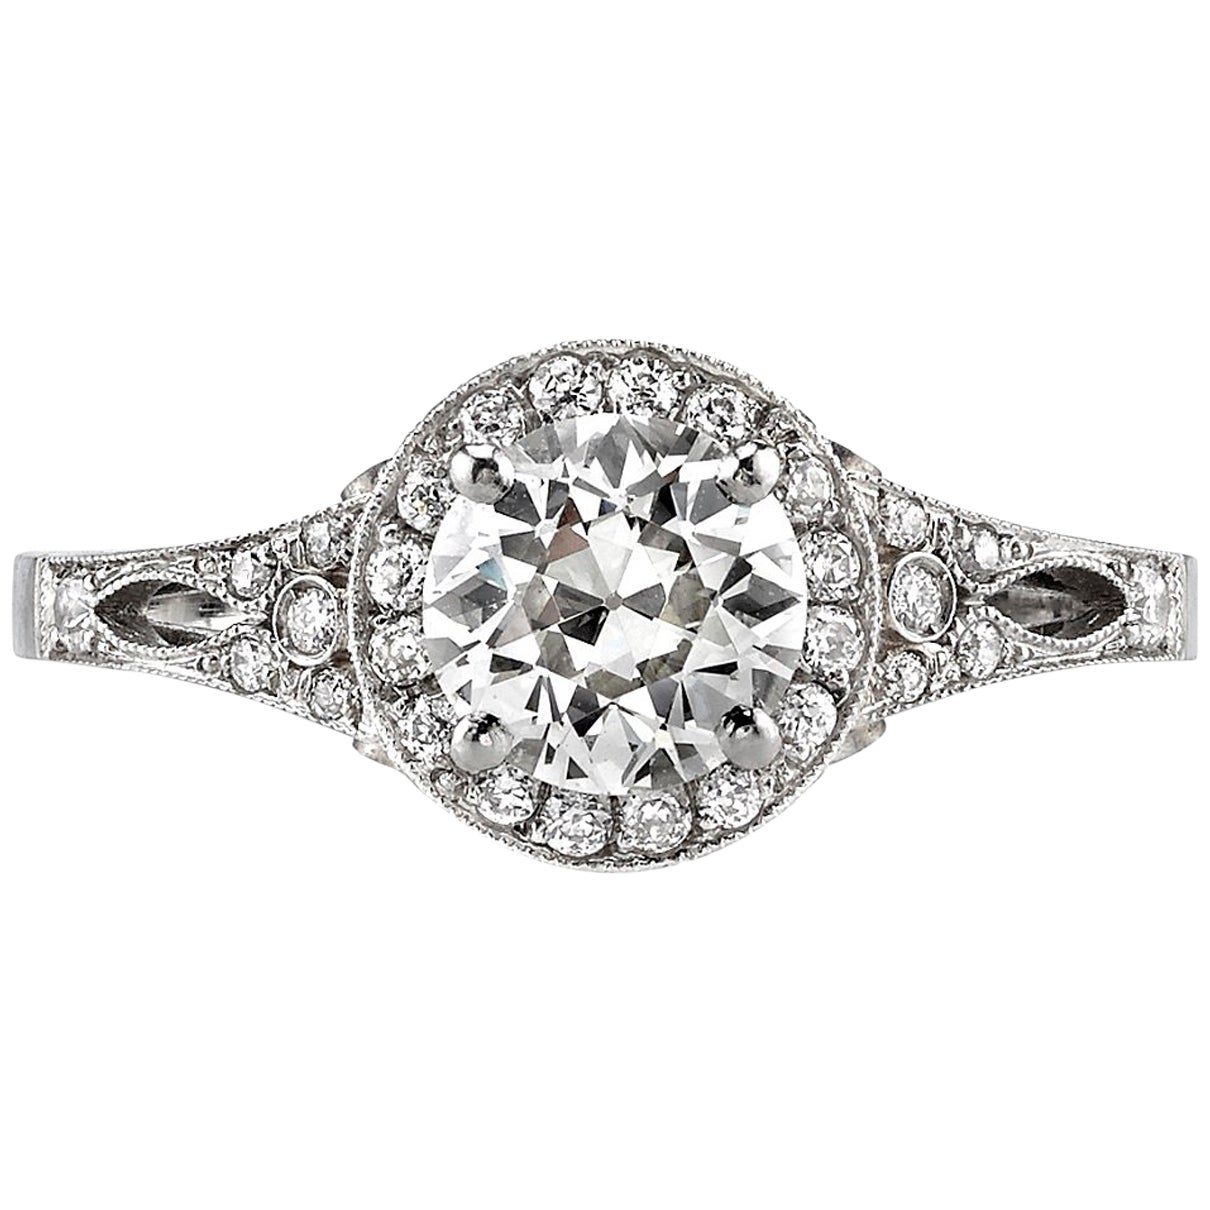 1.20 Carat Old European Cut Diamond Set in a Handcrafted Platinum Ring